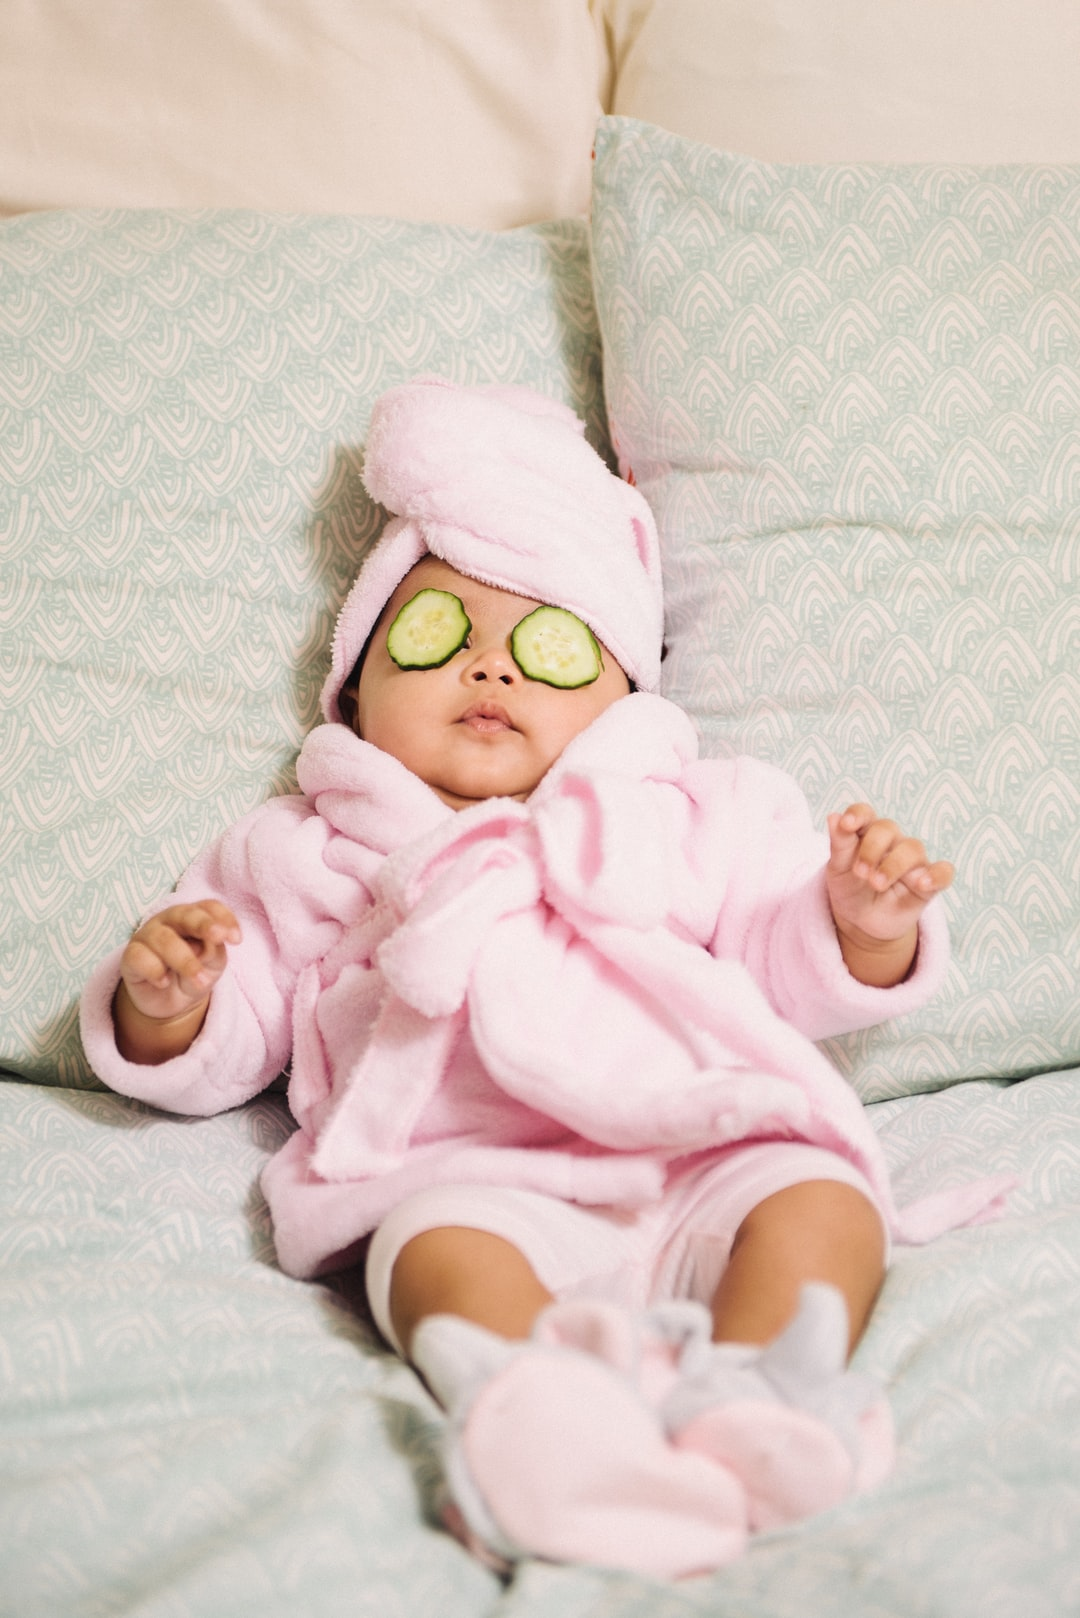 Baby With Robe Spa Day